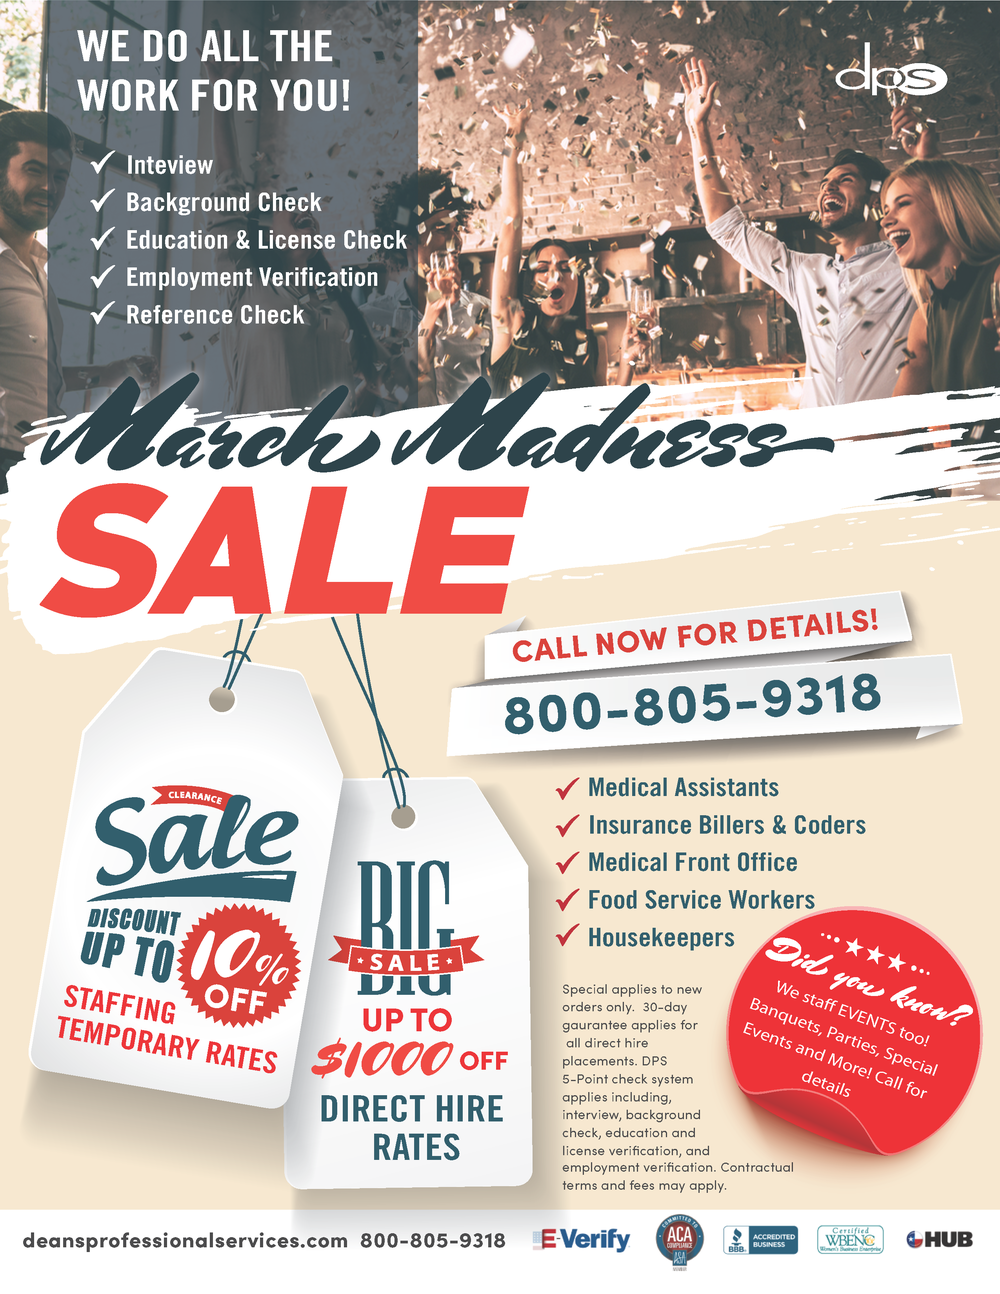 Full page march madness sale.png